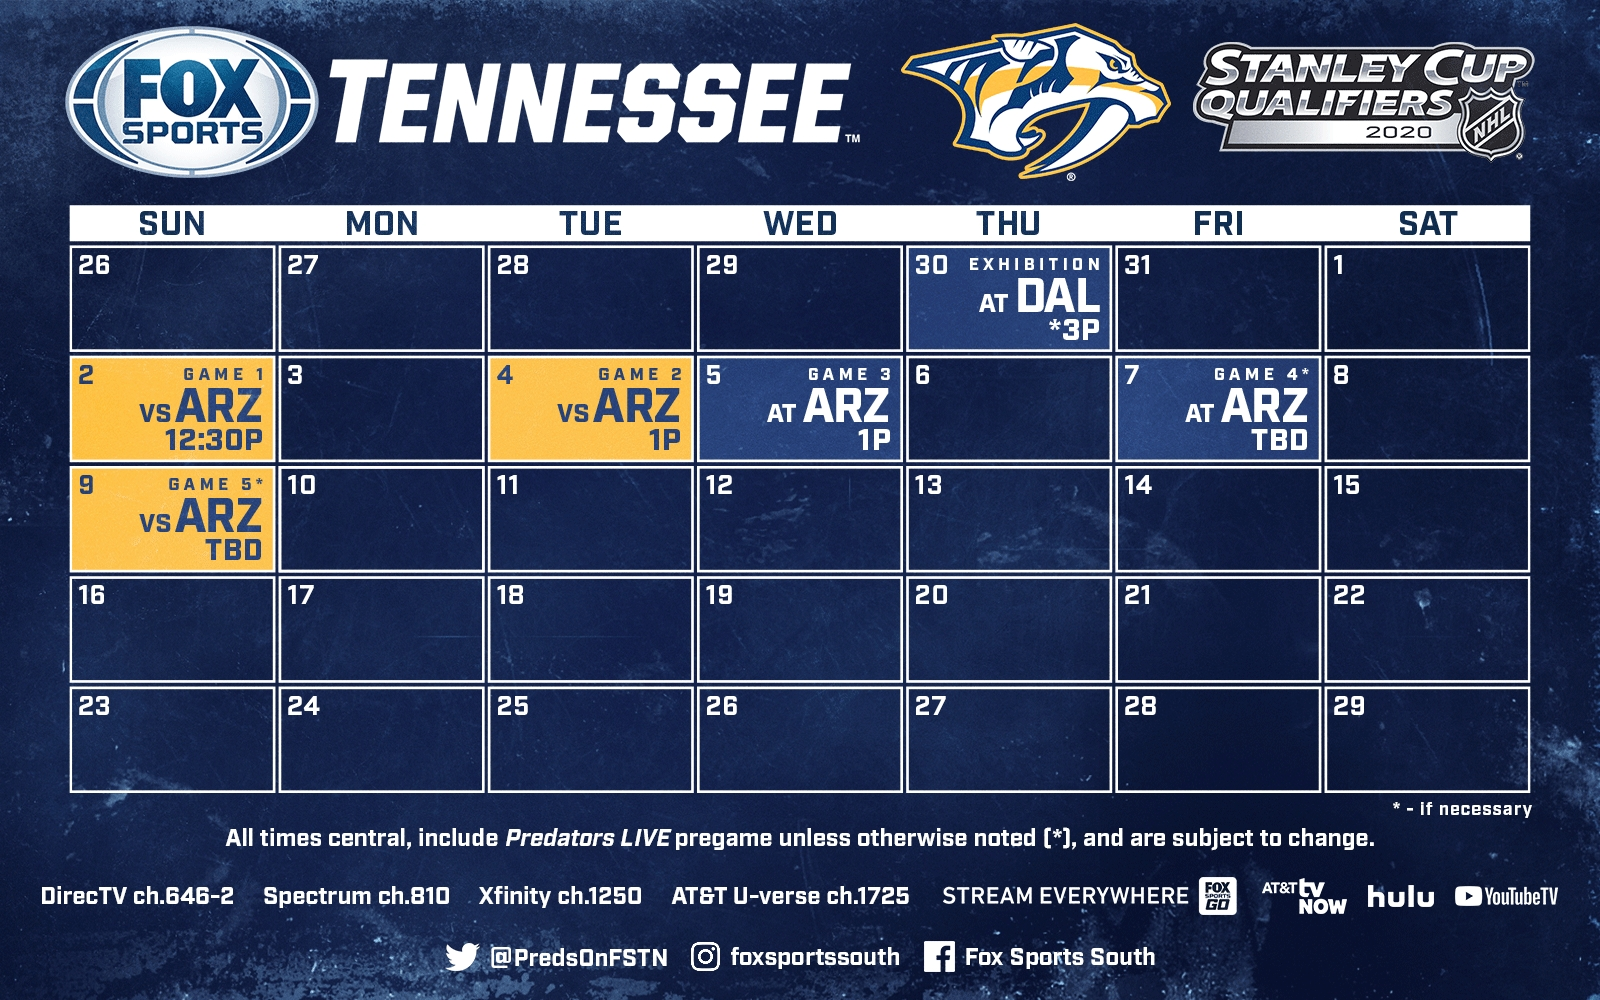 Nashville Predators Schedule: 2019-2020 Season | Fox Sports throughout Nashville Predators Schedule 2019 2020